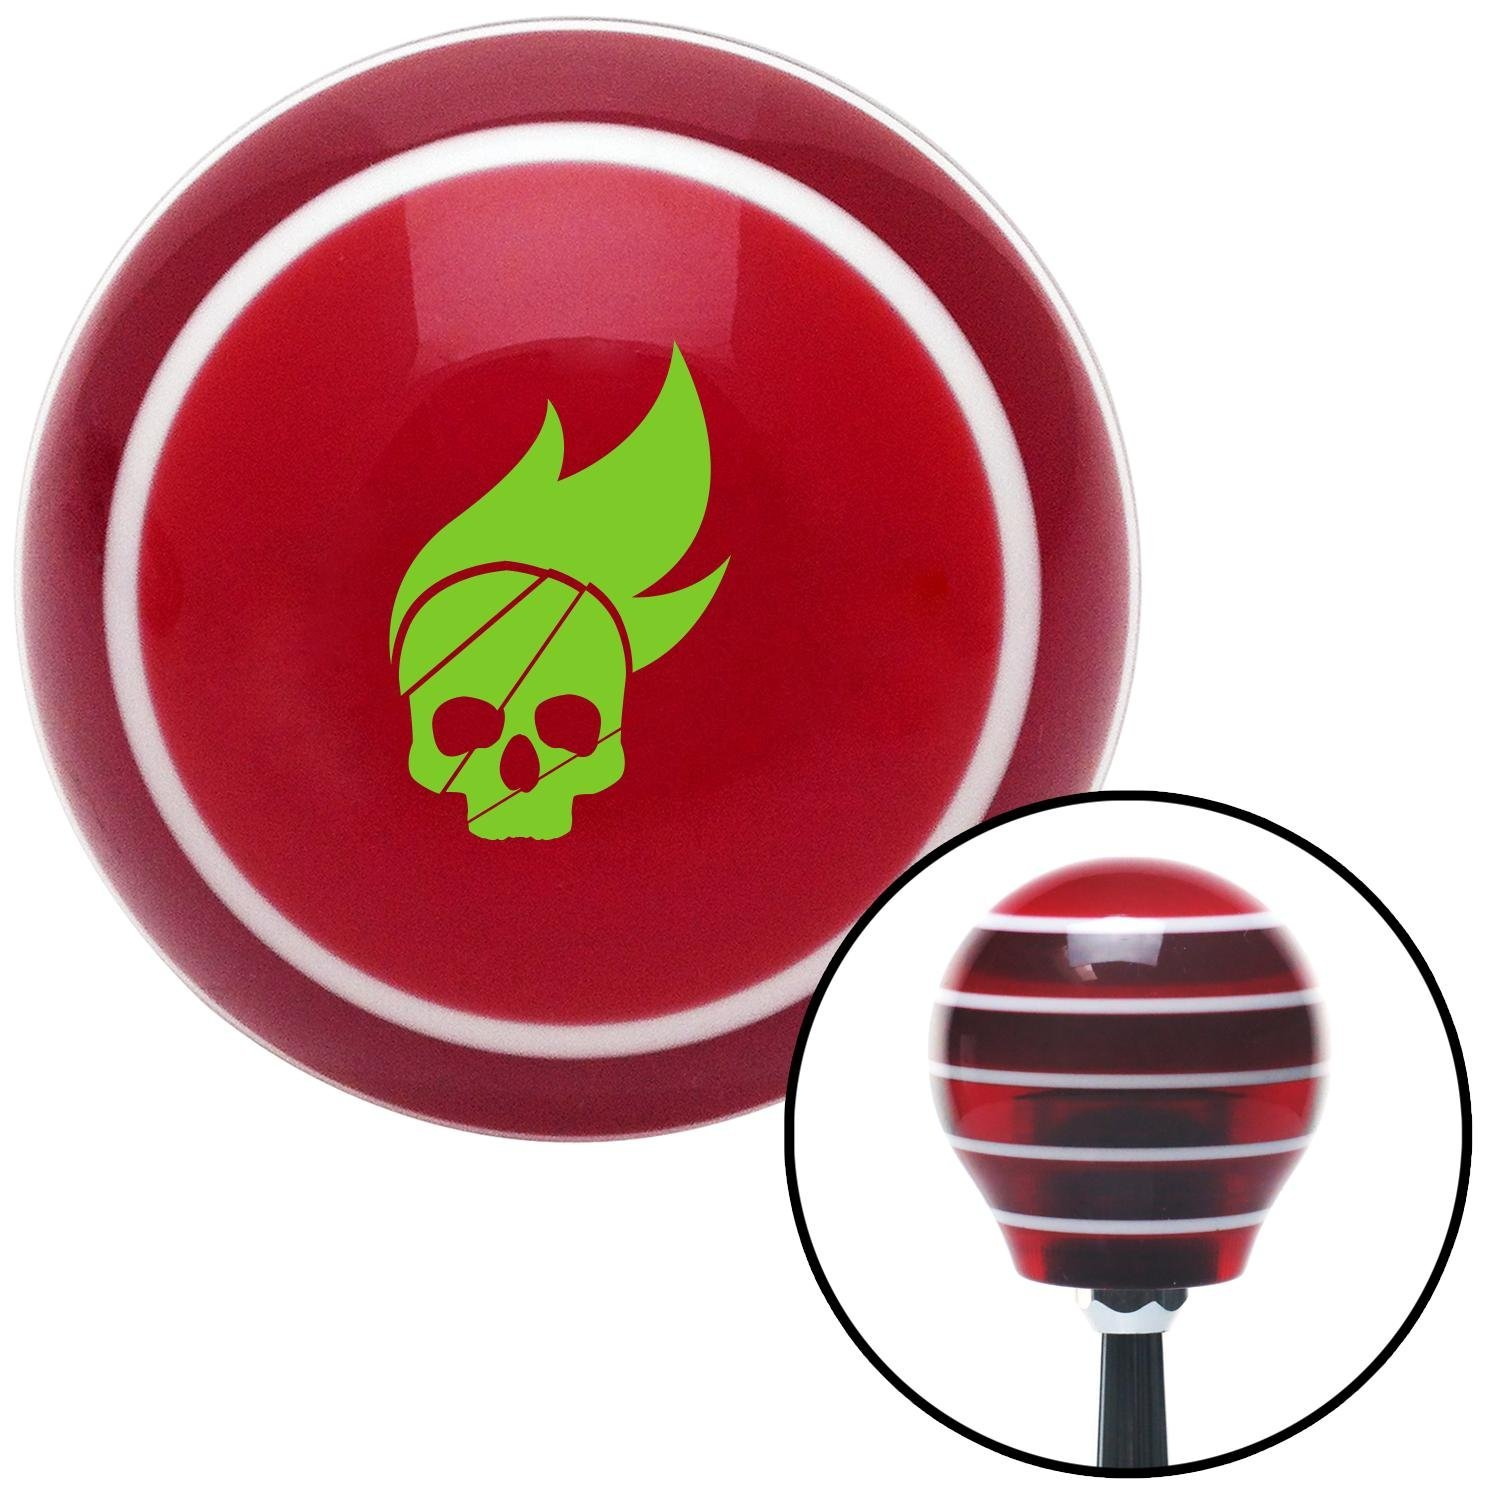 American Shifter 118578 Red Stripe Shift Knob with M16 x 1.5 Insert Green Skull Flame